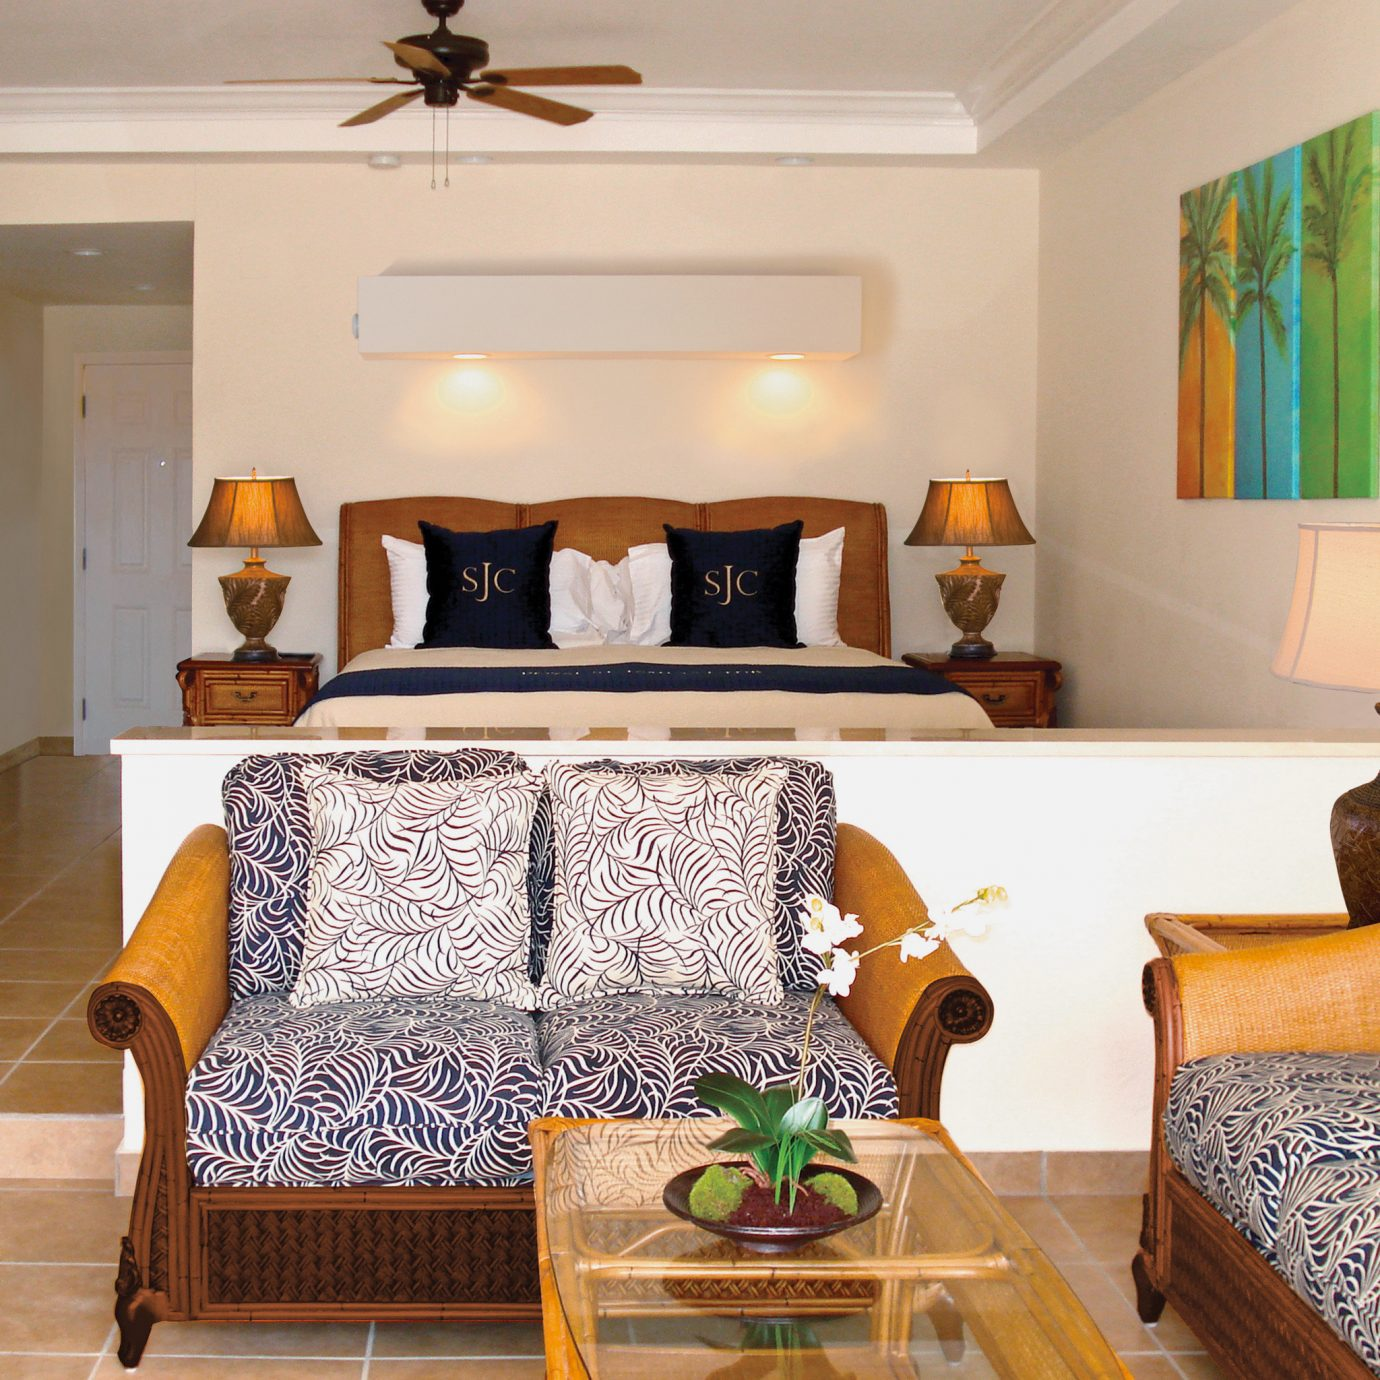 All-inclusive Beachfront Bedroom Family Resort property living room cottage home Suite hardwood Villa